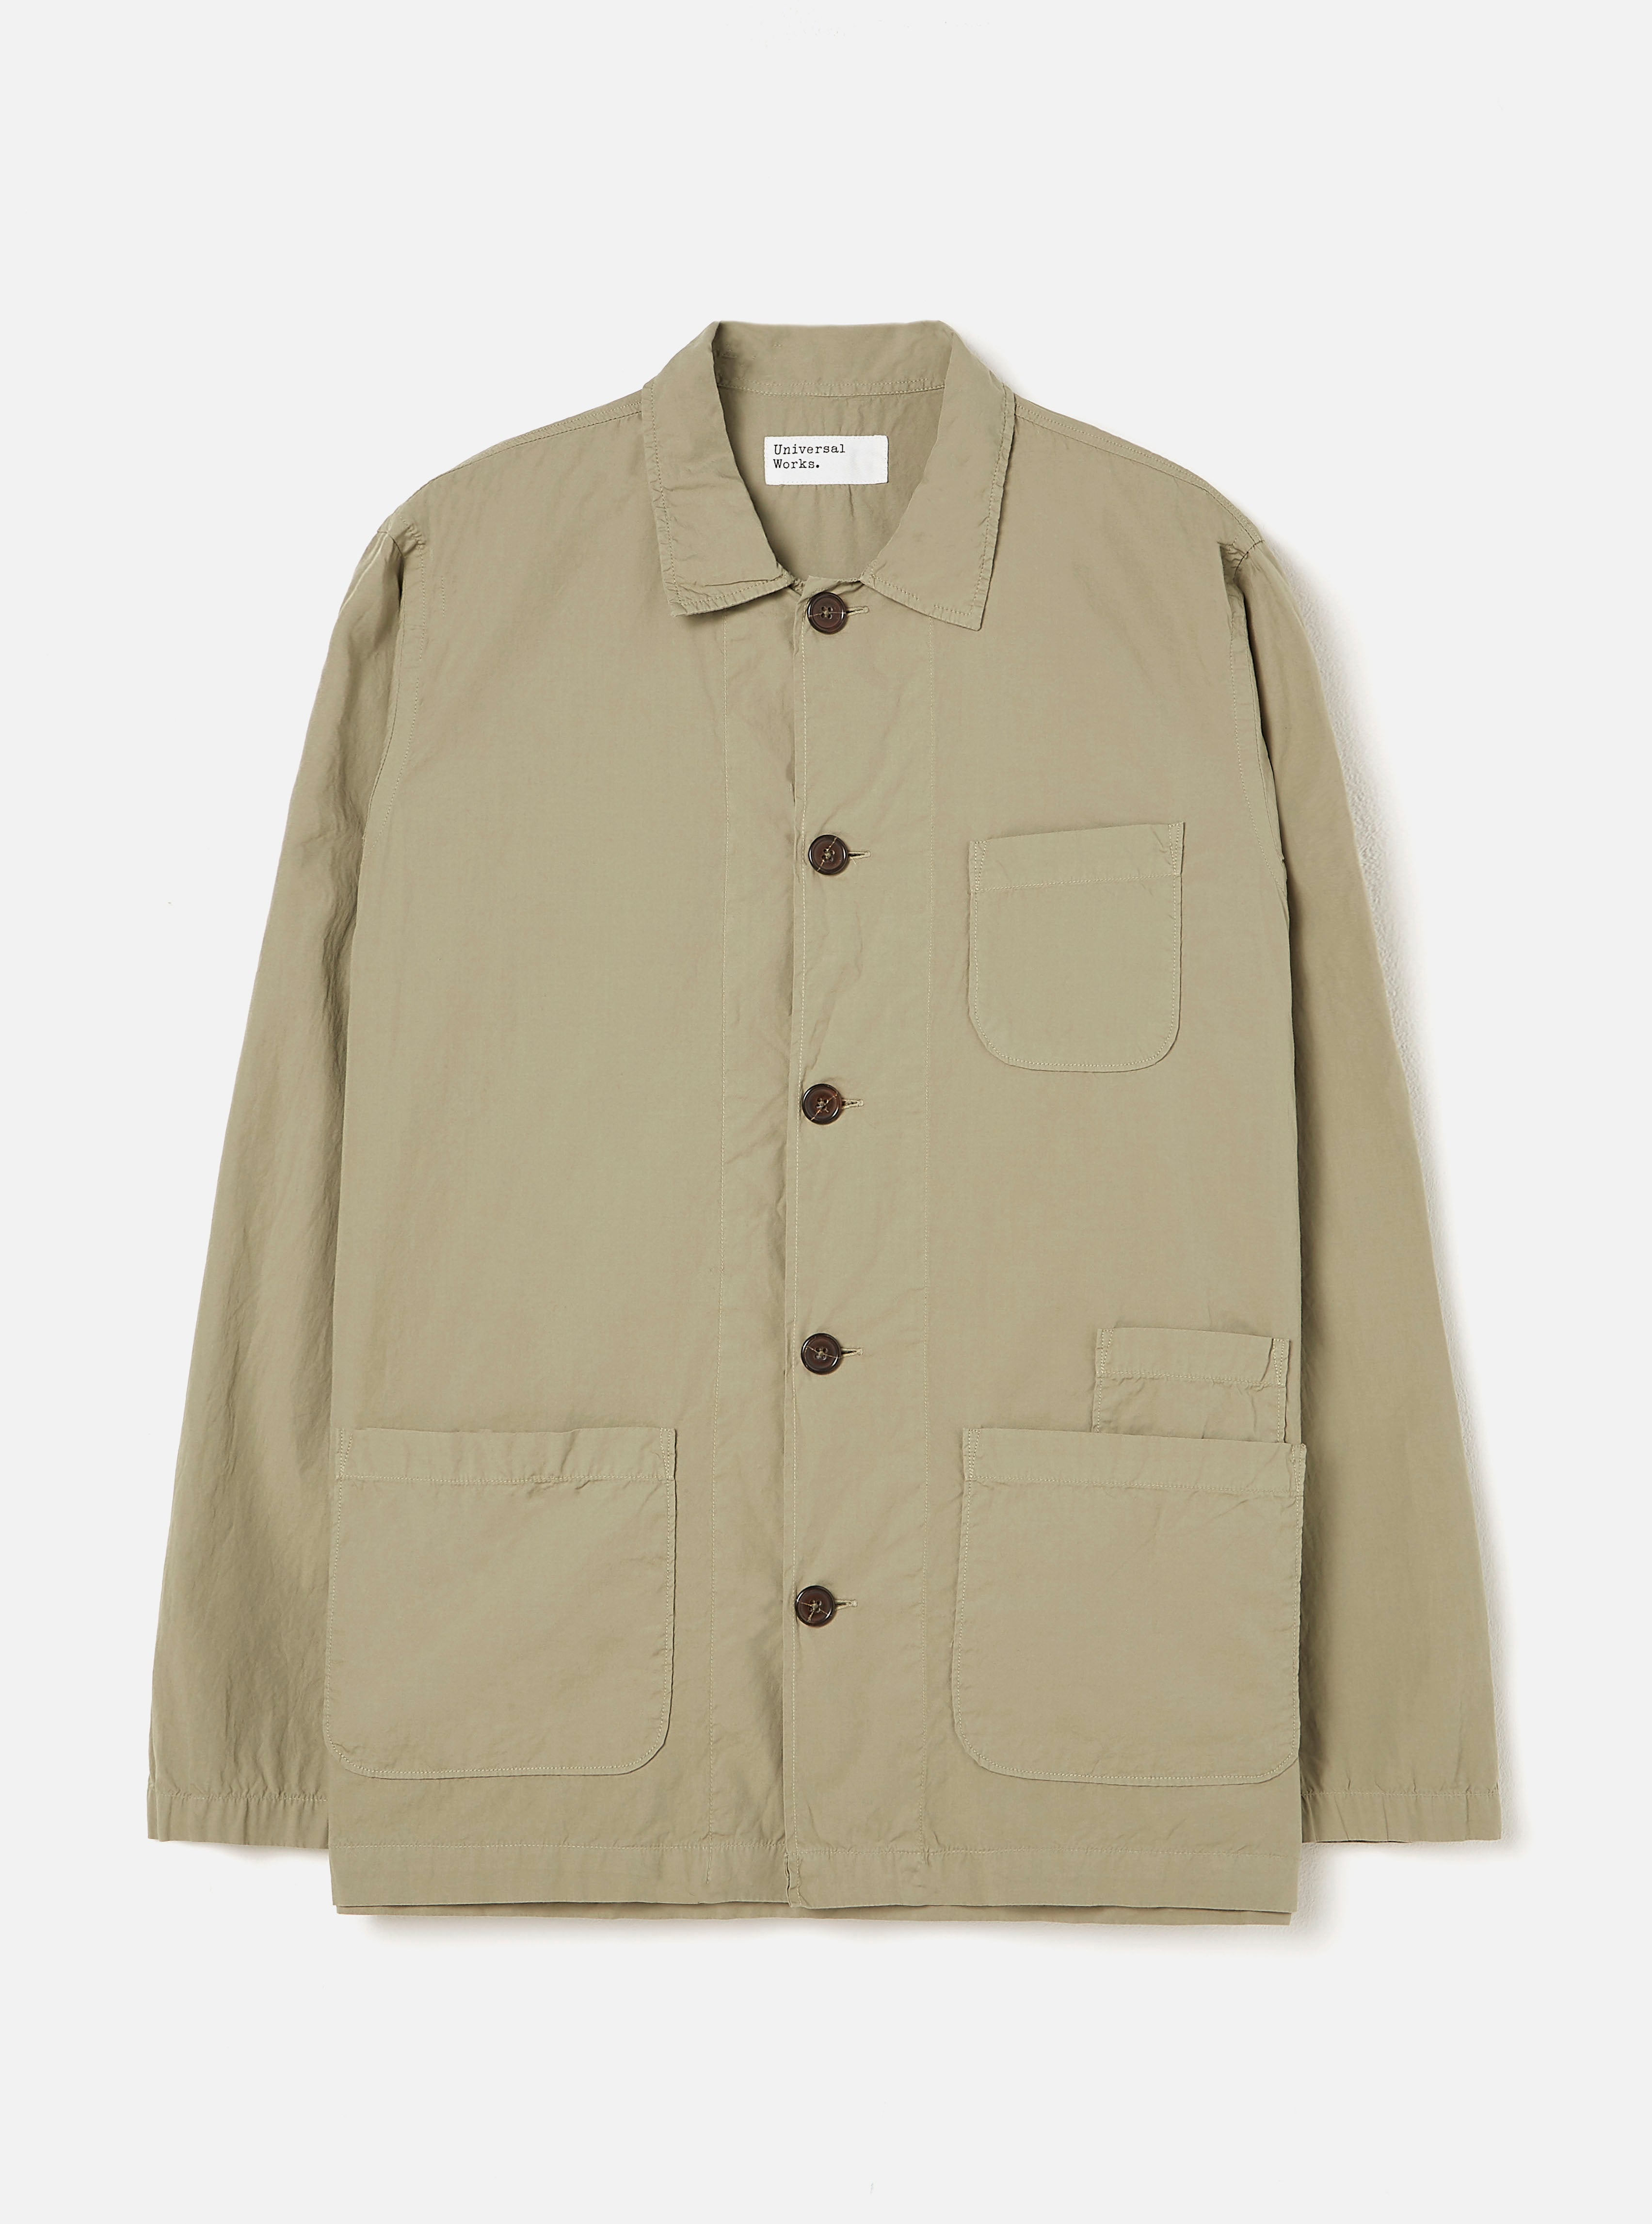 Universal Works Bakers Overshirt in Laurel Poplin